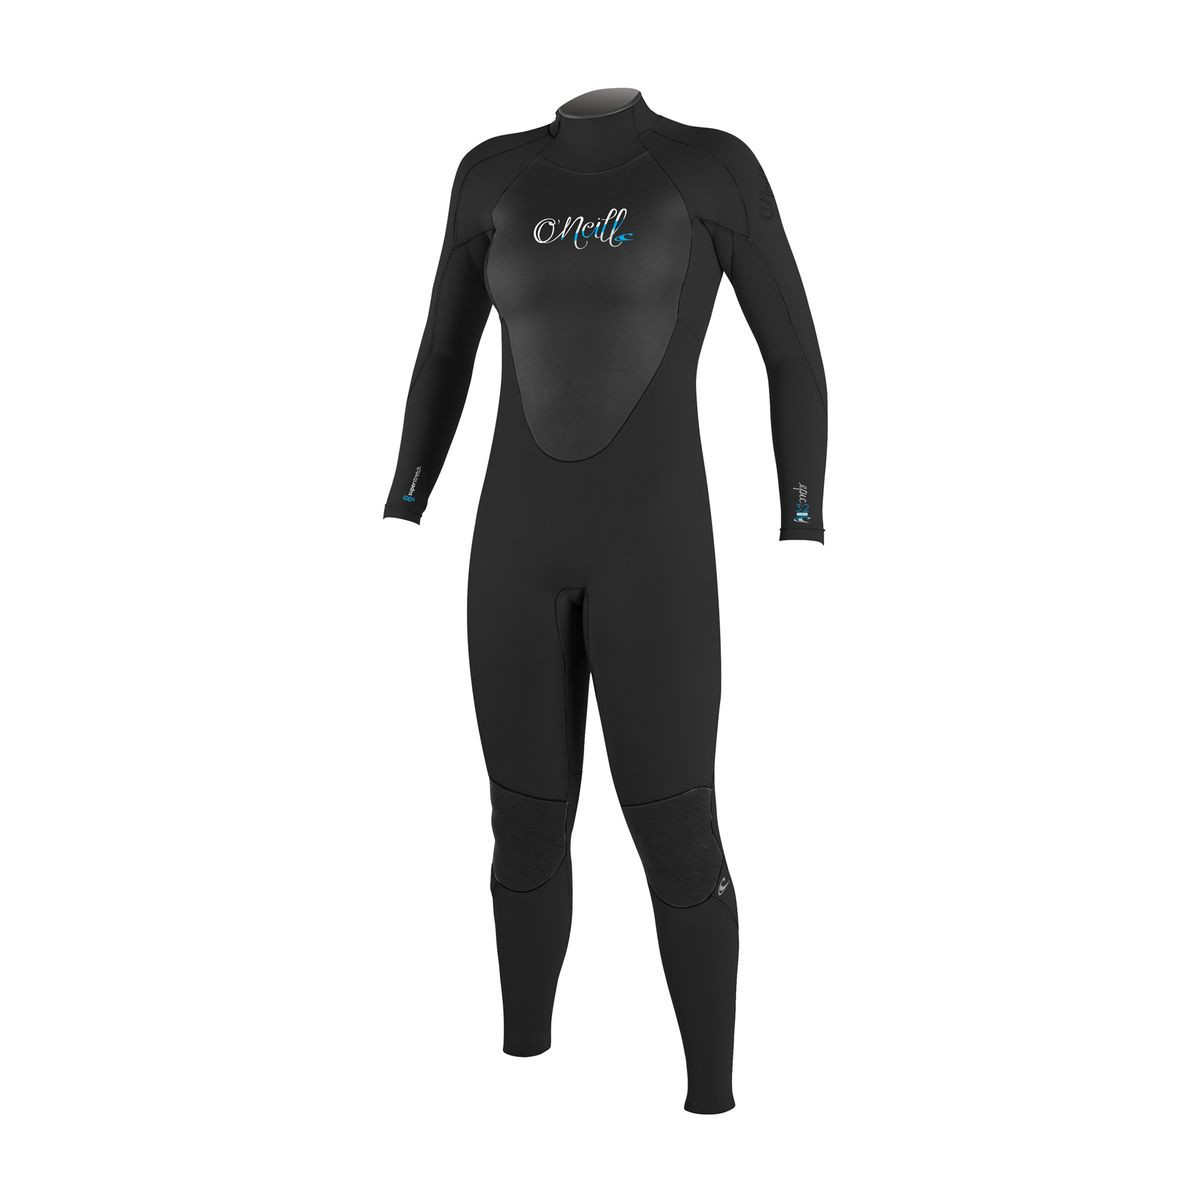 O'Neill Womens Epic 4/3mm Back Zip Wetsuit - Black